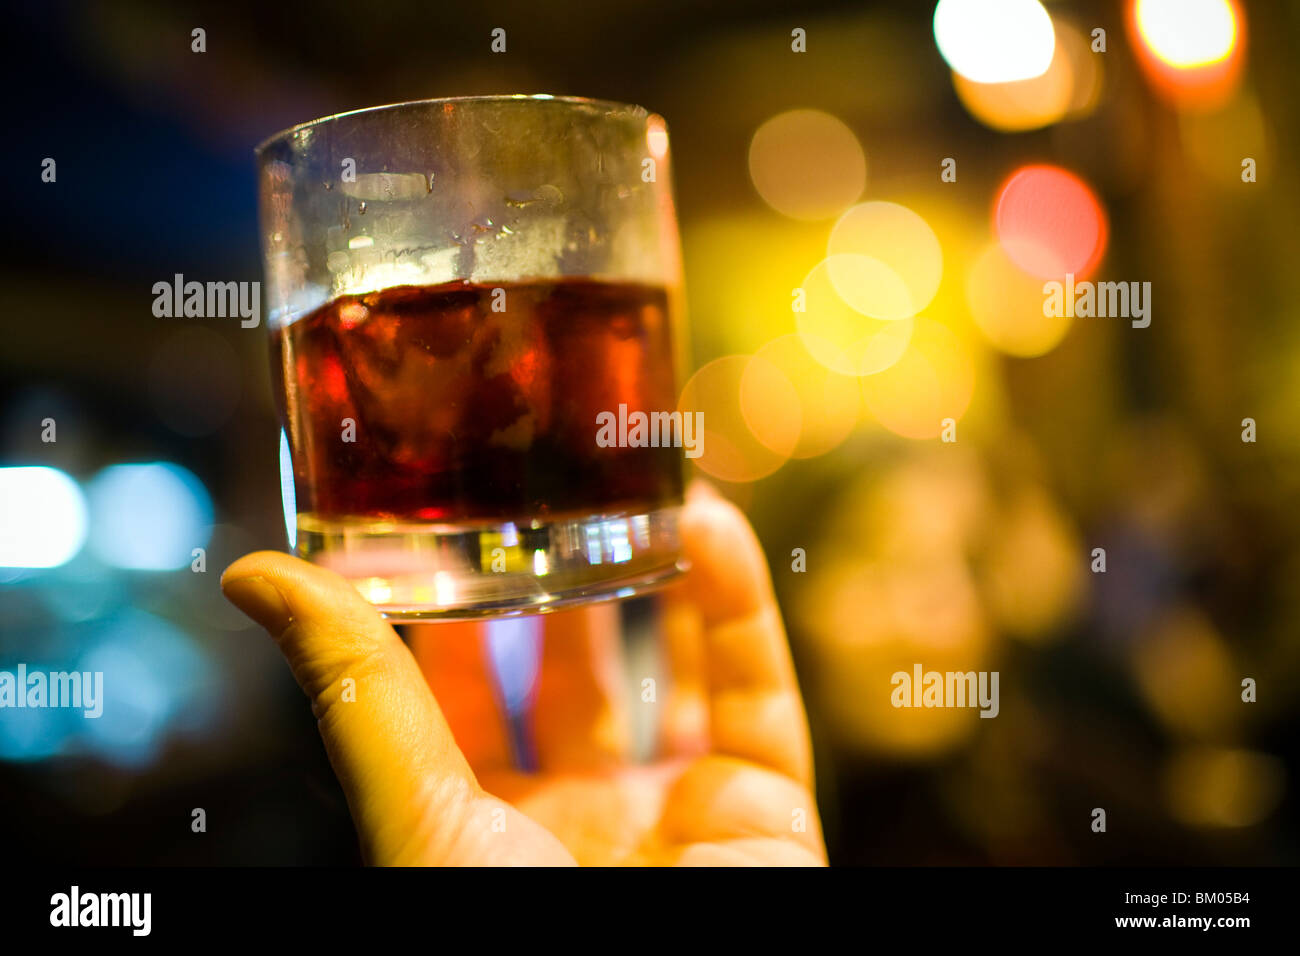 Hand holding a glass with alcoholic beverage, Seville, Spain - Stock Image